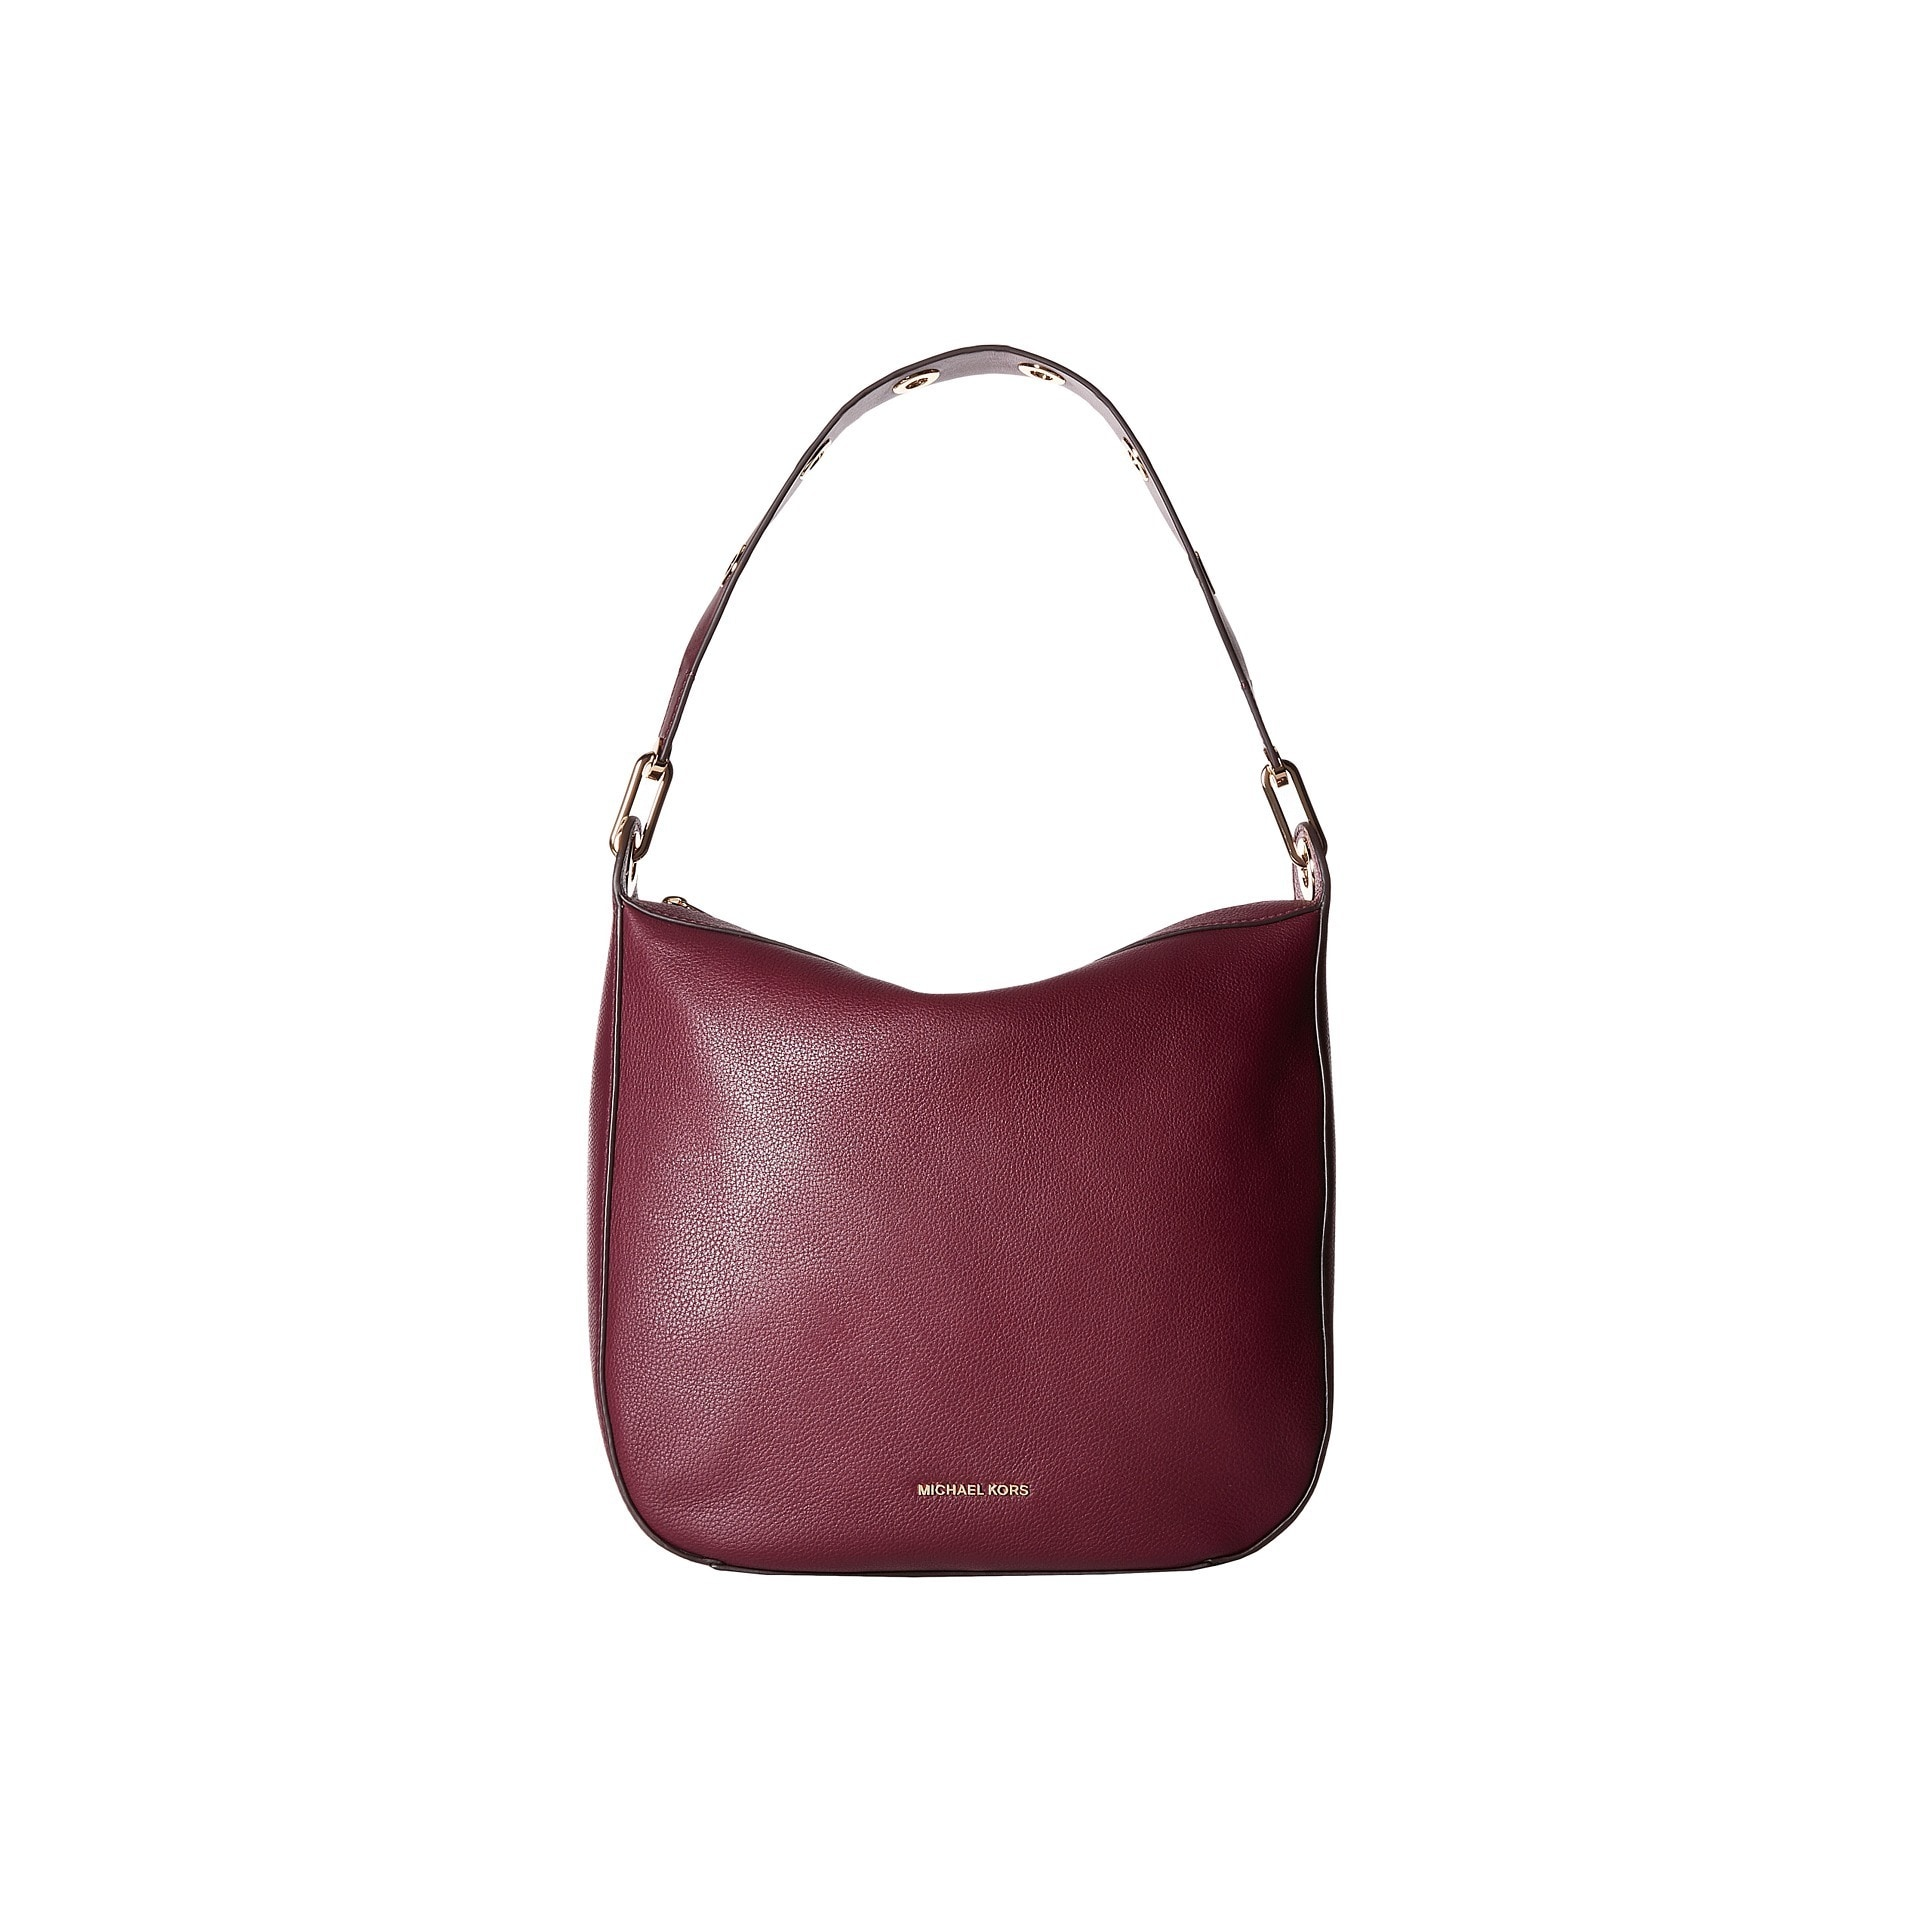 Michael Kors Women's Raven Large Plum Leather Shoulder Handbag